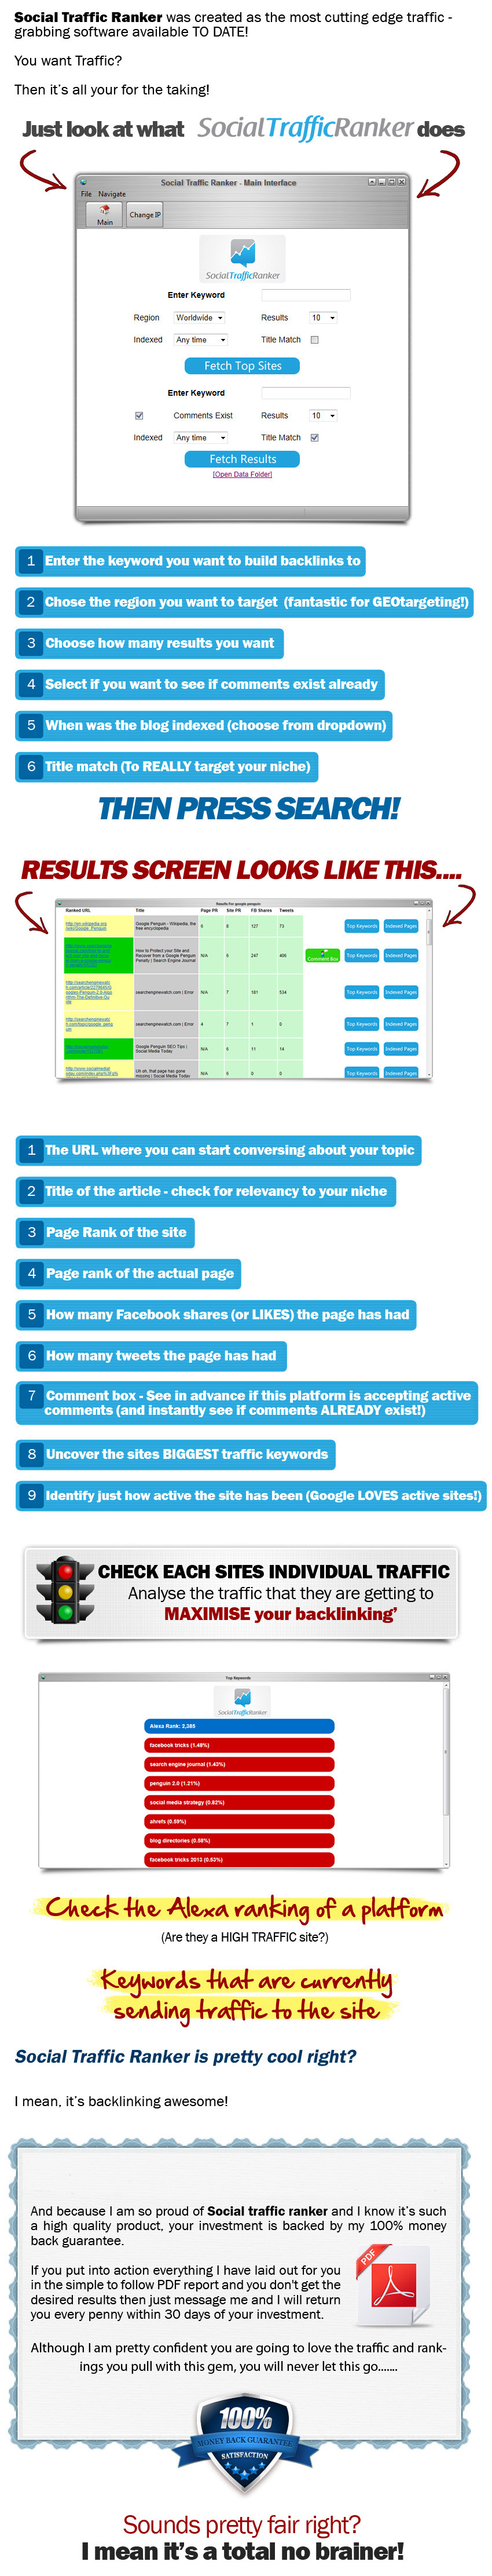 SEO software that will help you to achieve top Google rankings